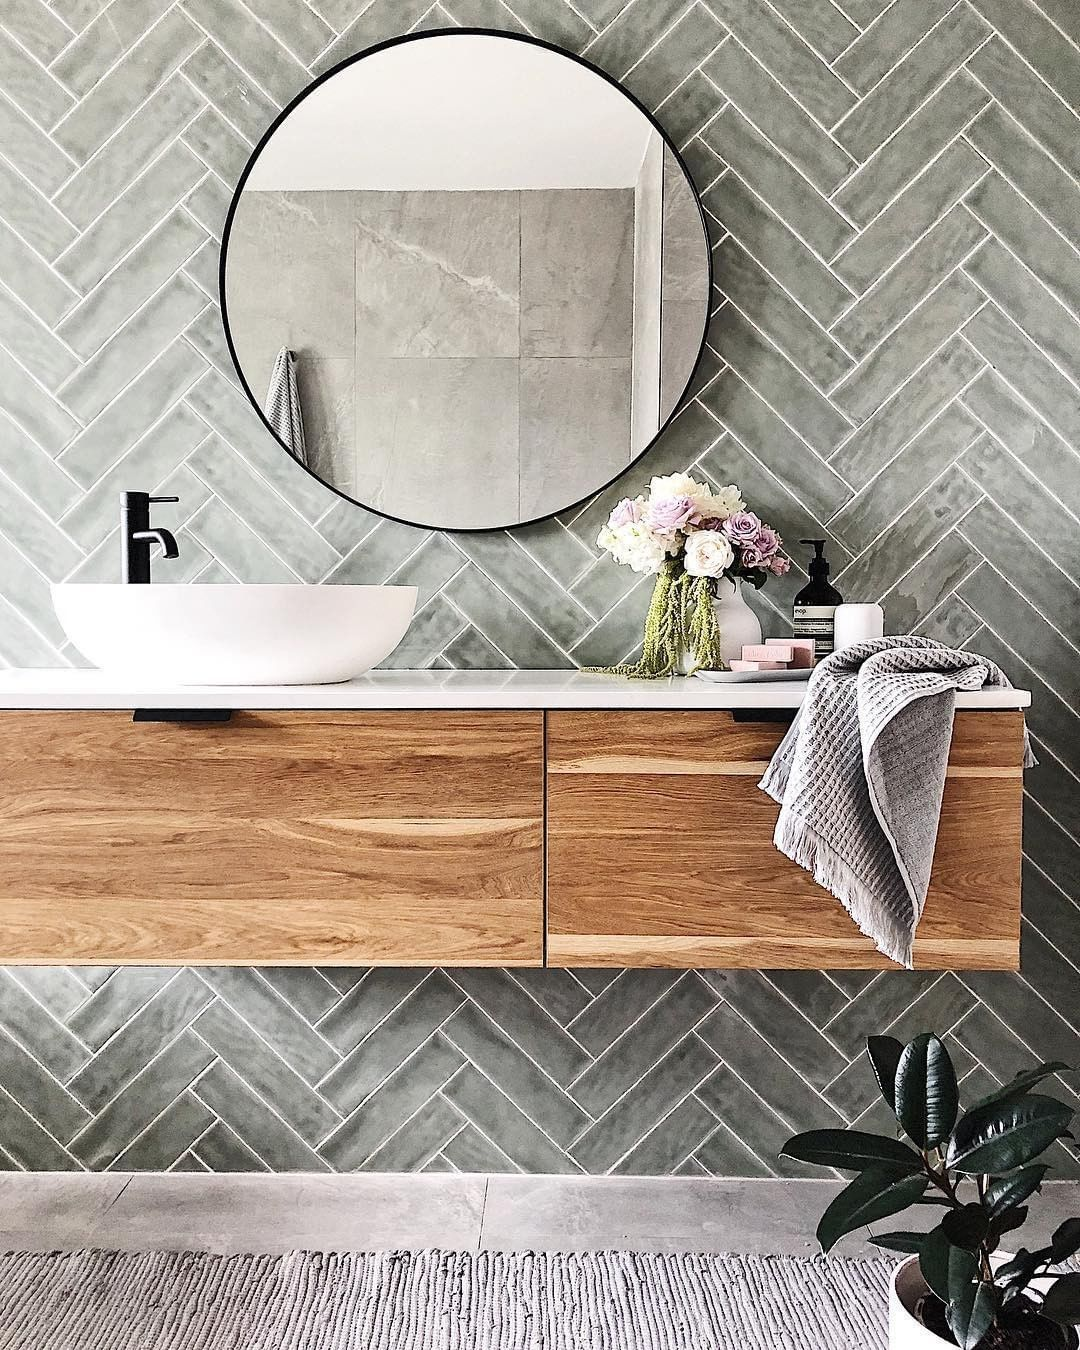 Highgrove Bathrooms On Instagram Loving This Herringbone Tile Feature Wall Teamed With The Eden In 2020 Bathroom Interior Design Bathroom Interior Bathrooms Remodel